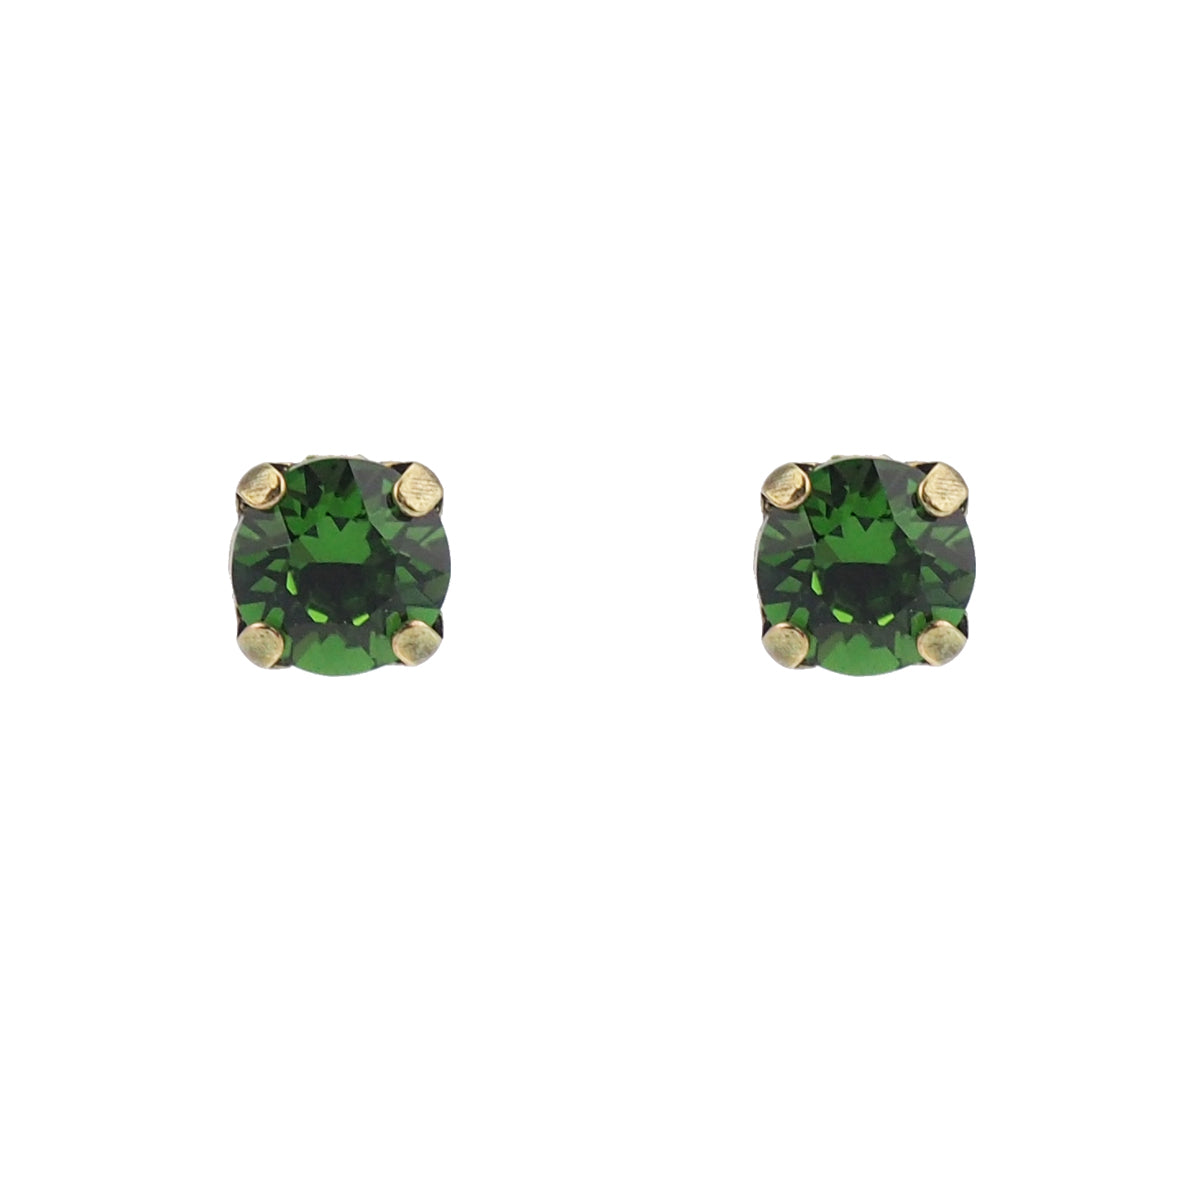 Bliss Studs small - Fern Green